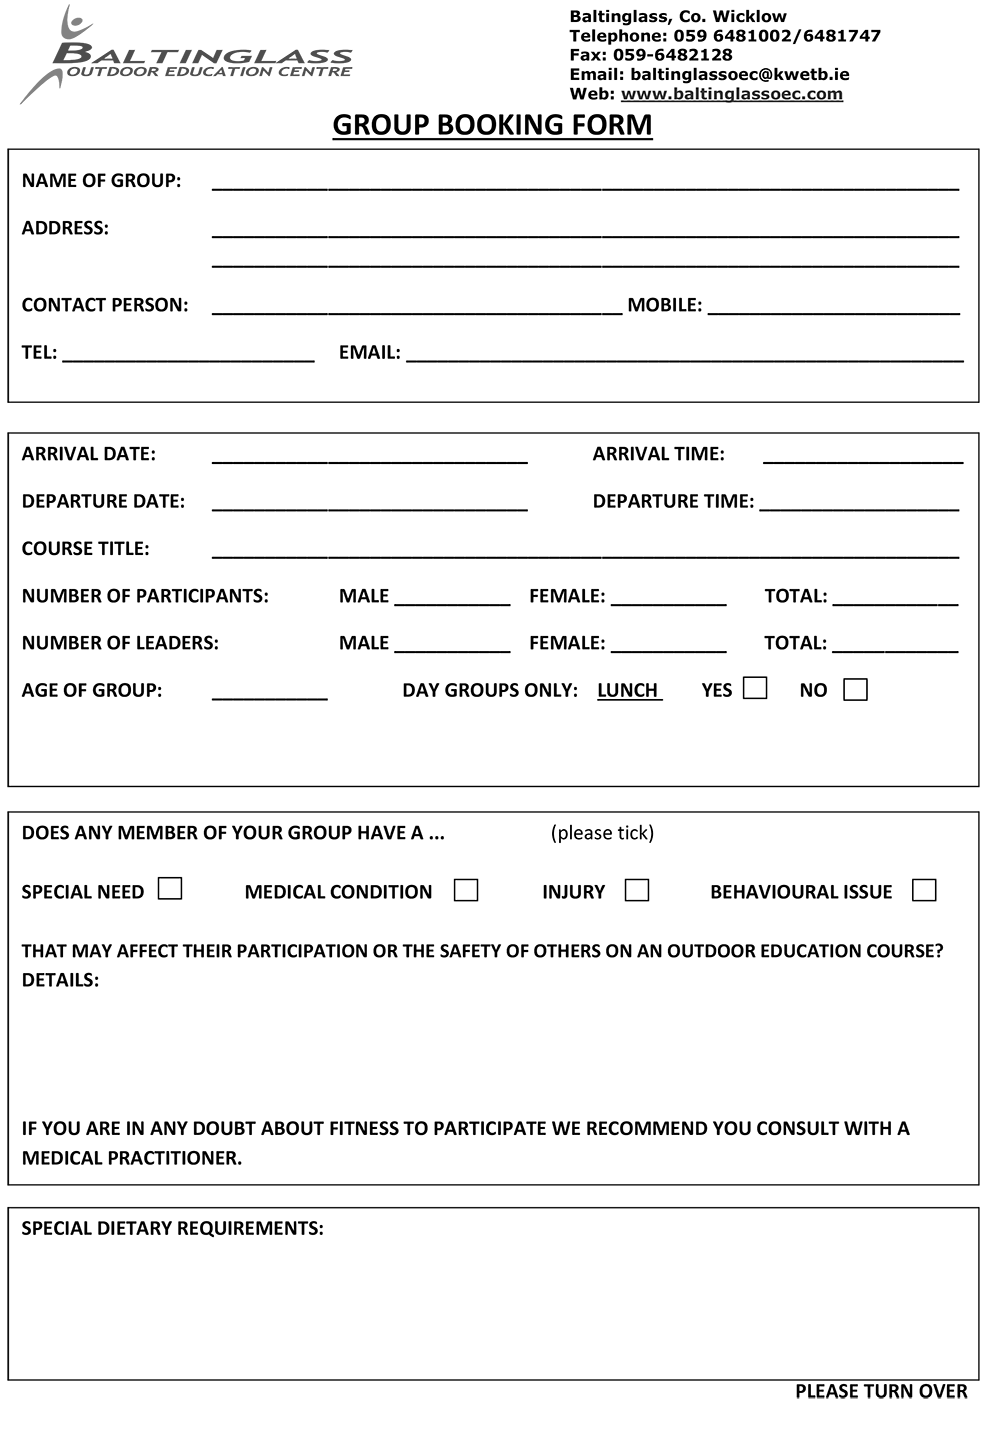 Group booking form baltinglass outdoor education center click image to download thecheapjerseys Choice Image